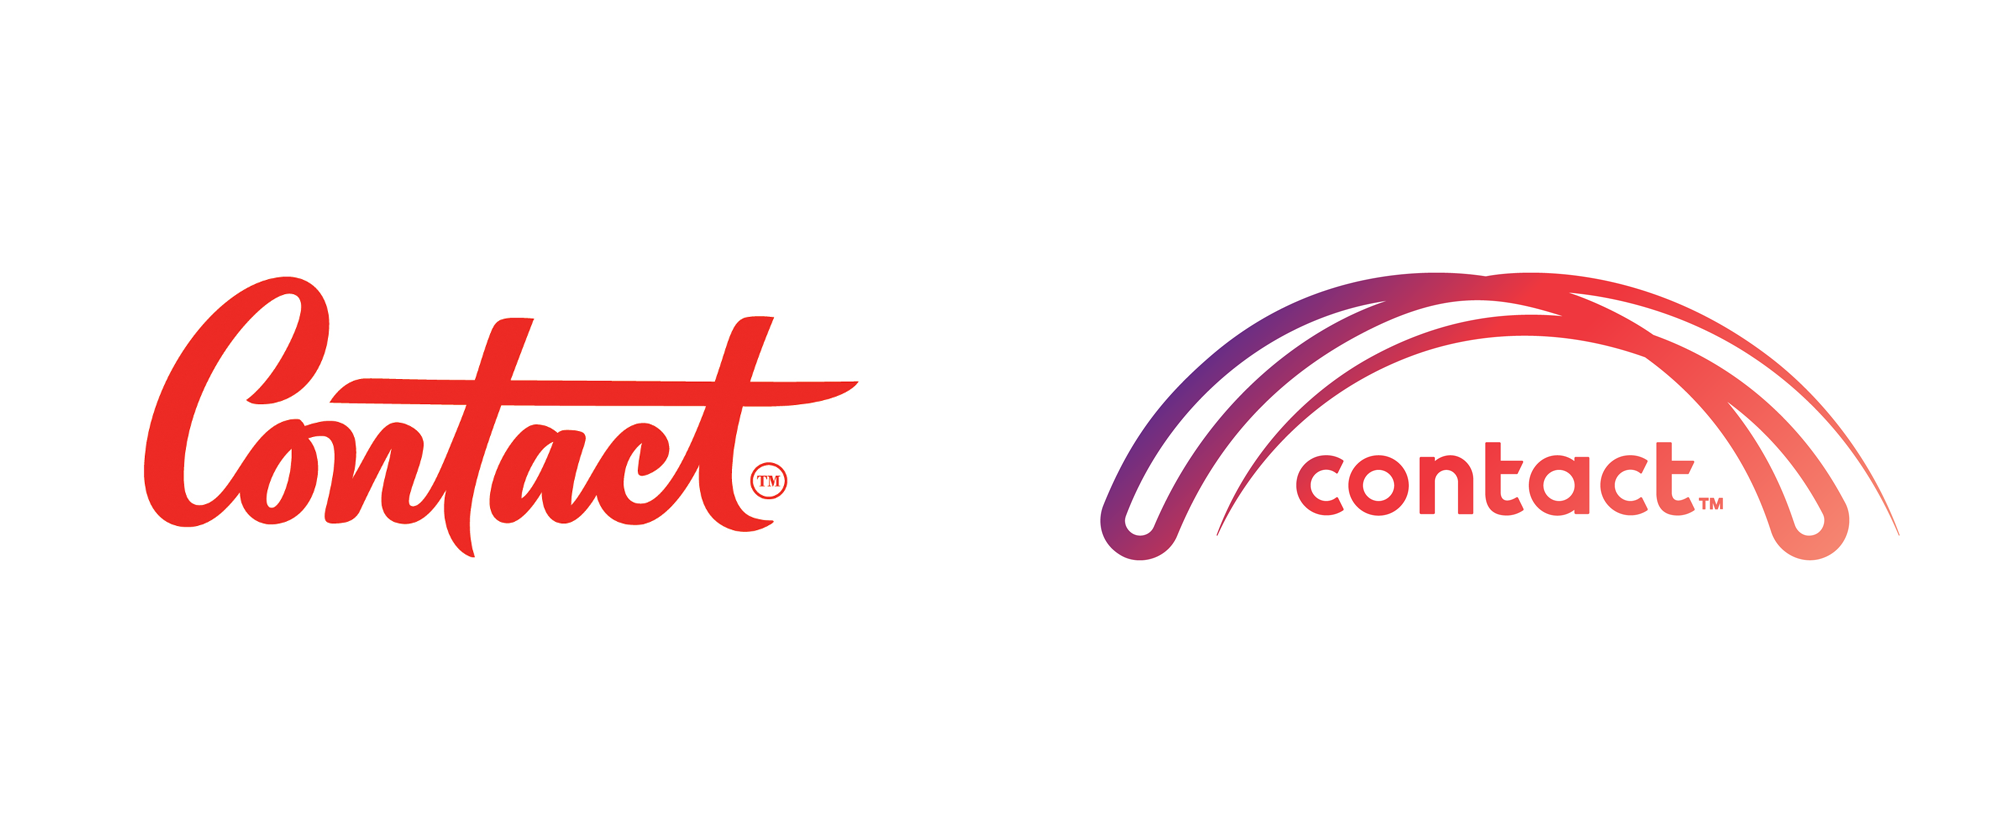 New Logo and Identity for Contact by Bob's Your Uncle